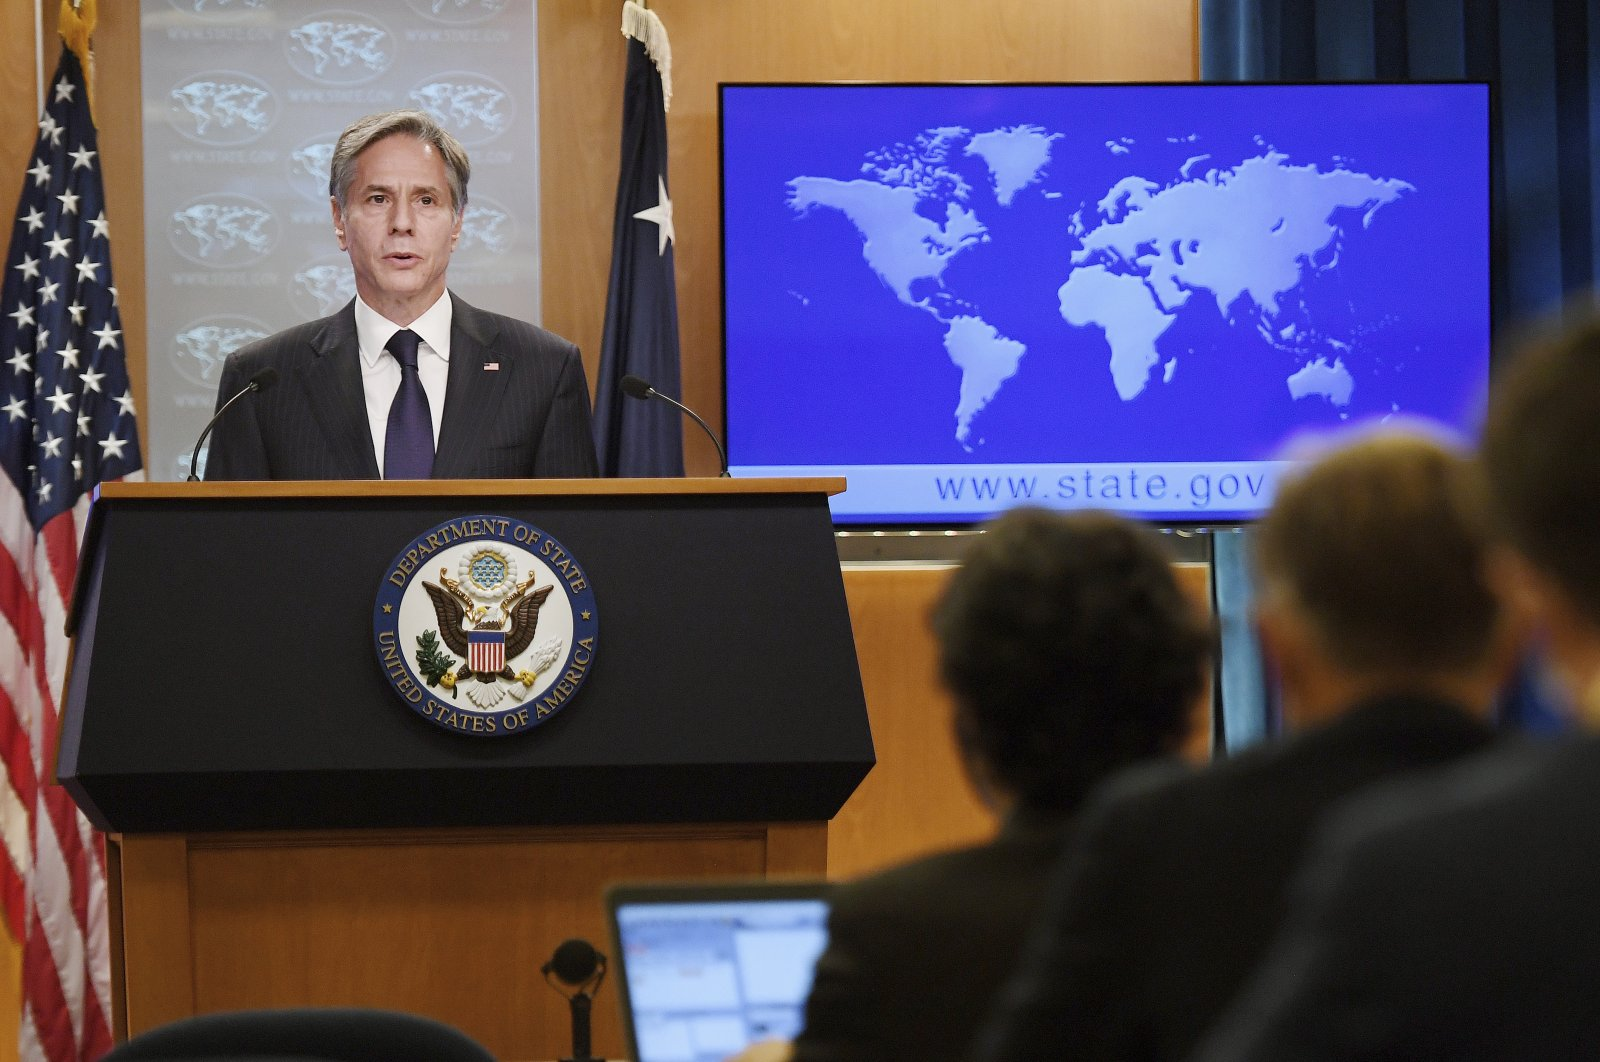 U.S. Secretary of State Antony Blinken speaks about Afghanistan during a media briefing at the State Department in Washington, D.C., Sept. 3, 2021. (AP Photo)